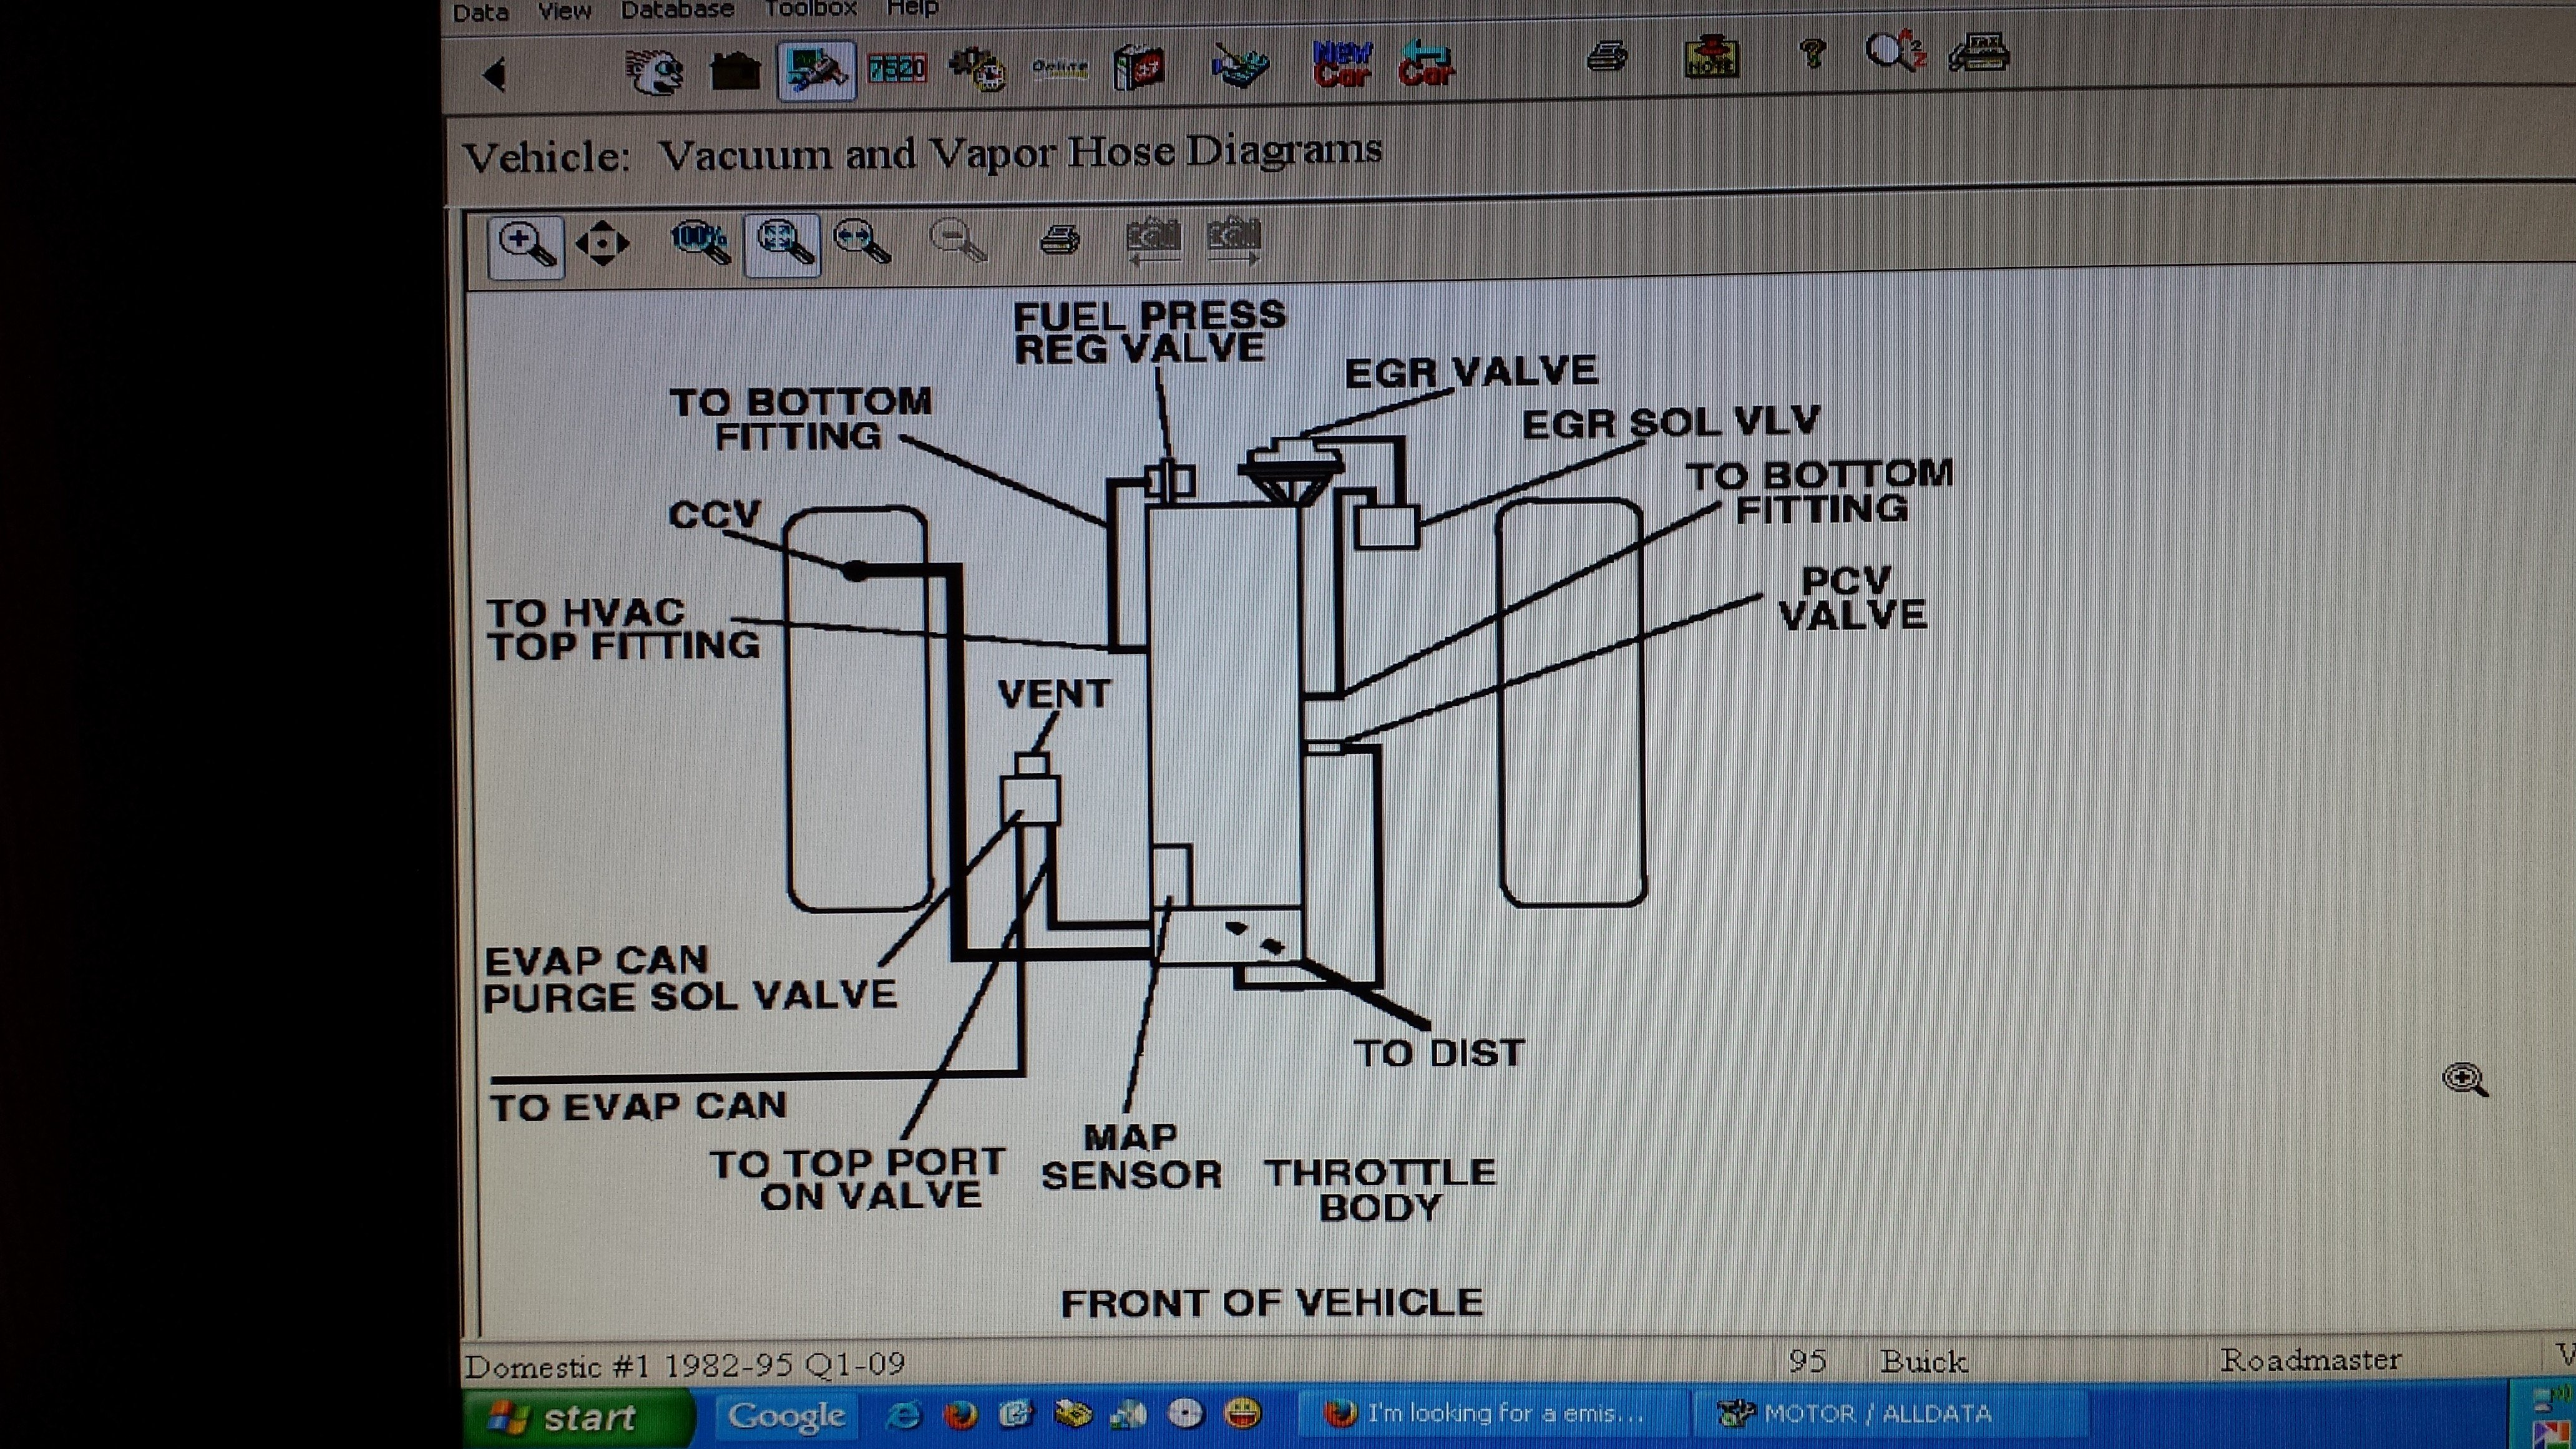 I M Looking For A Emissions Vacuum Schematic For A 1995 Buick Roadmaster The Area That I M Working On Is The Vapor